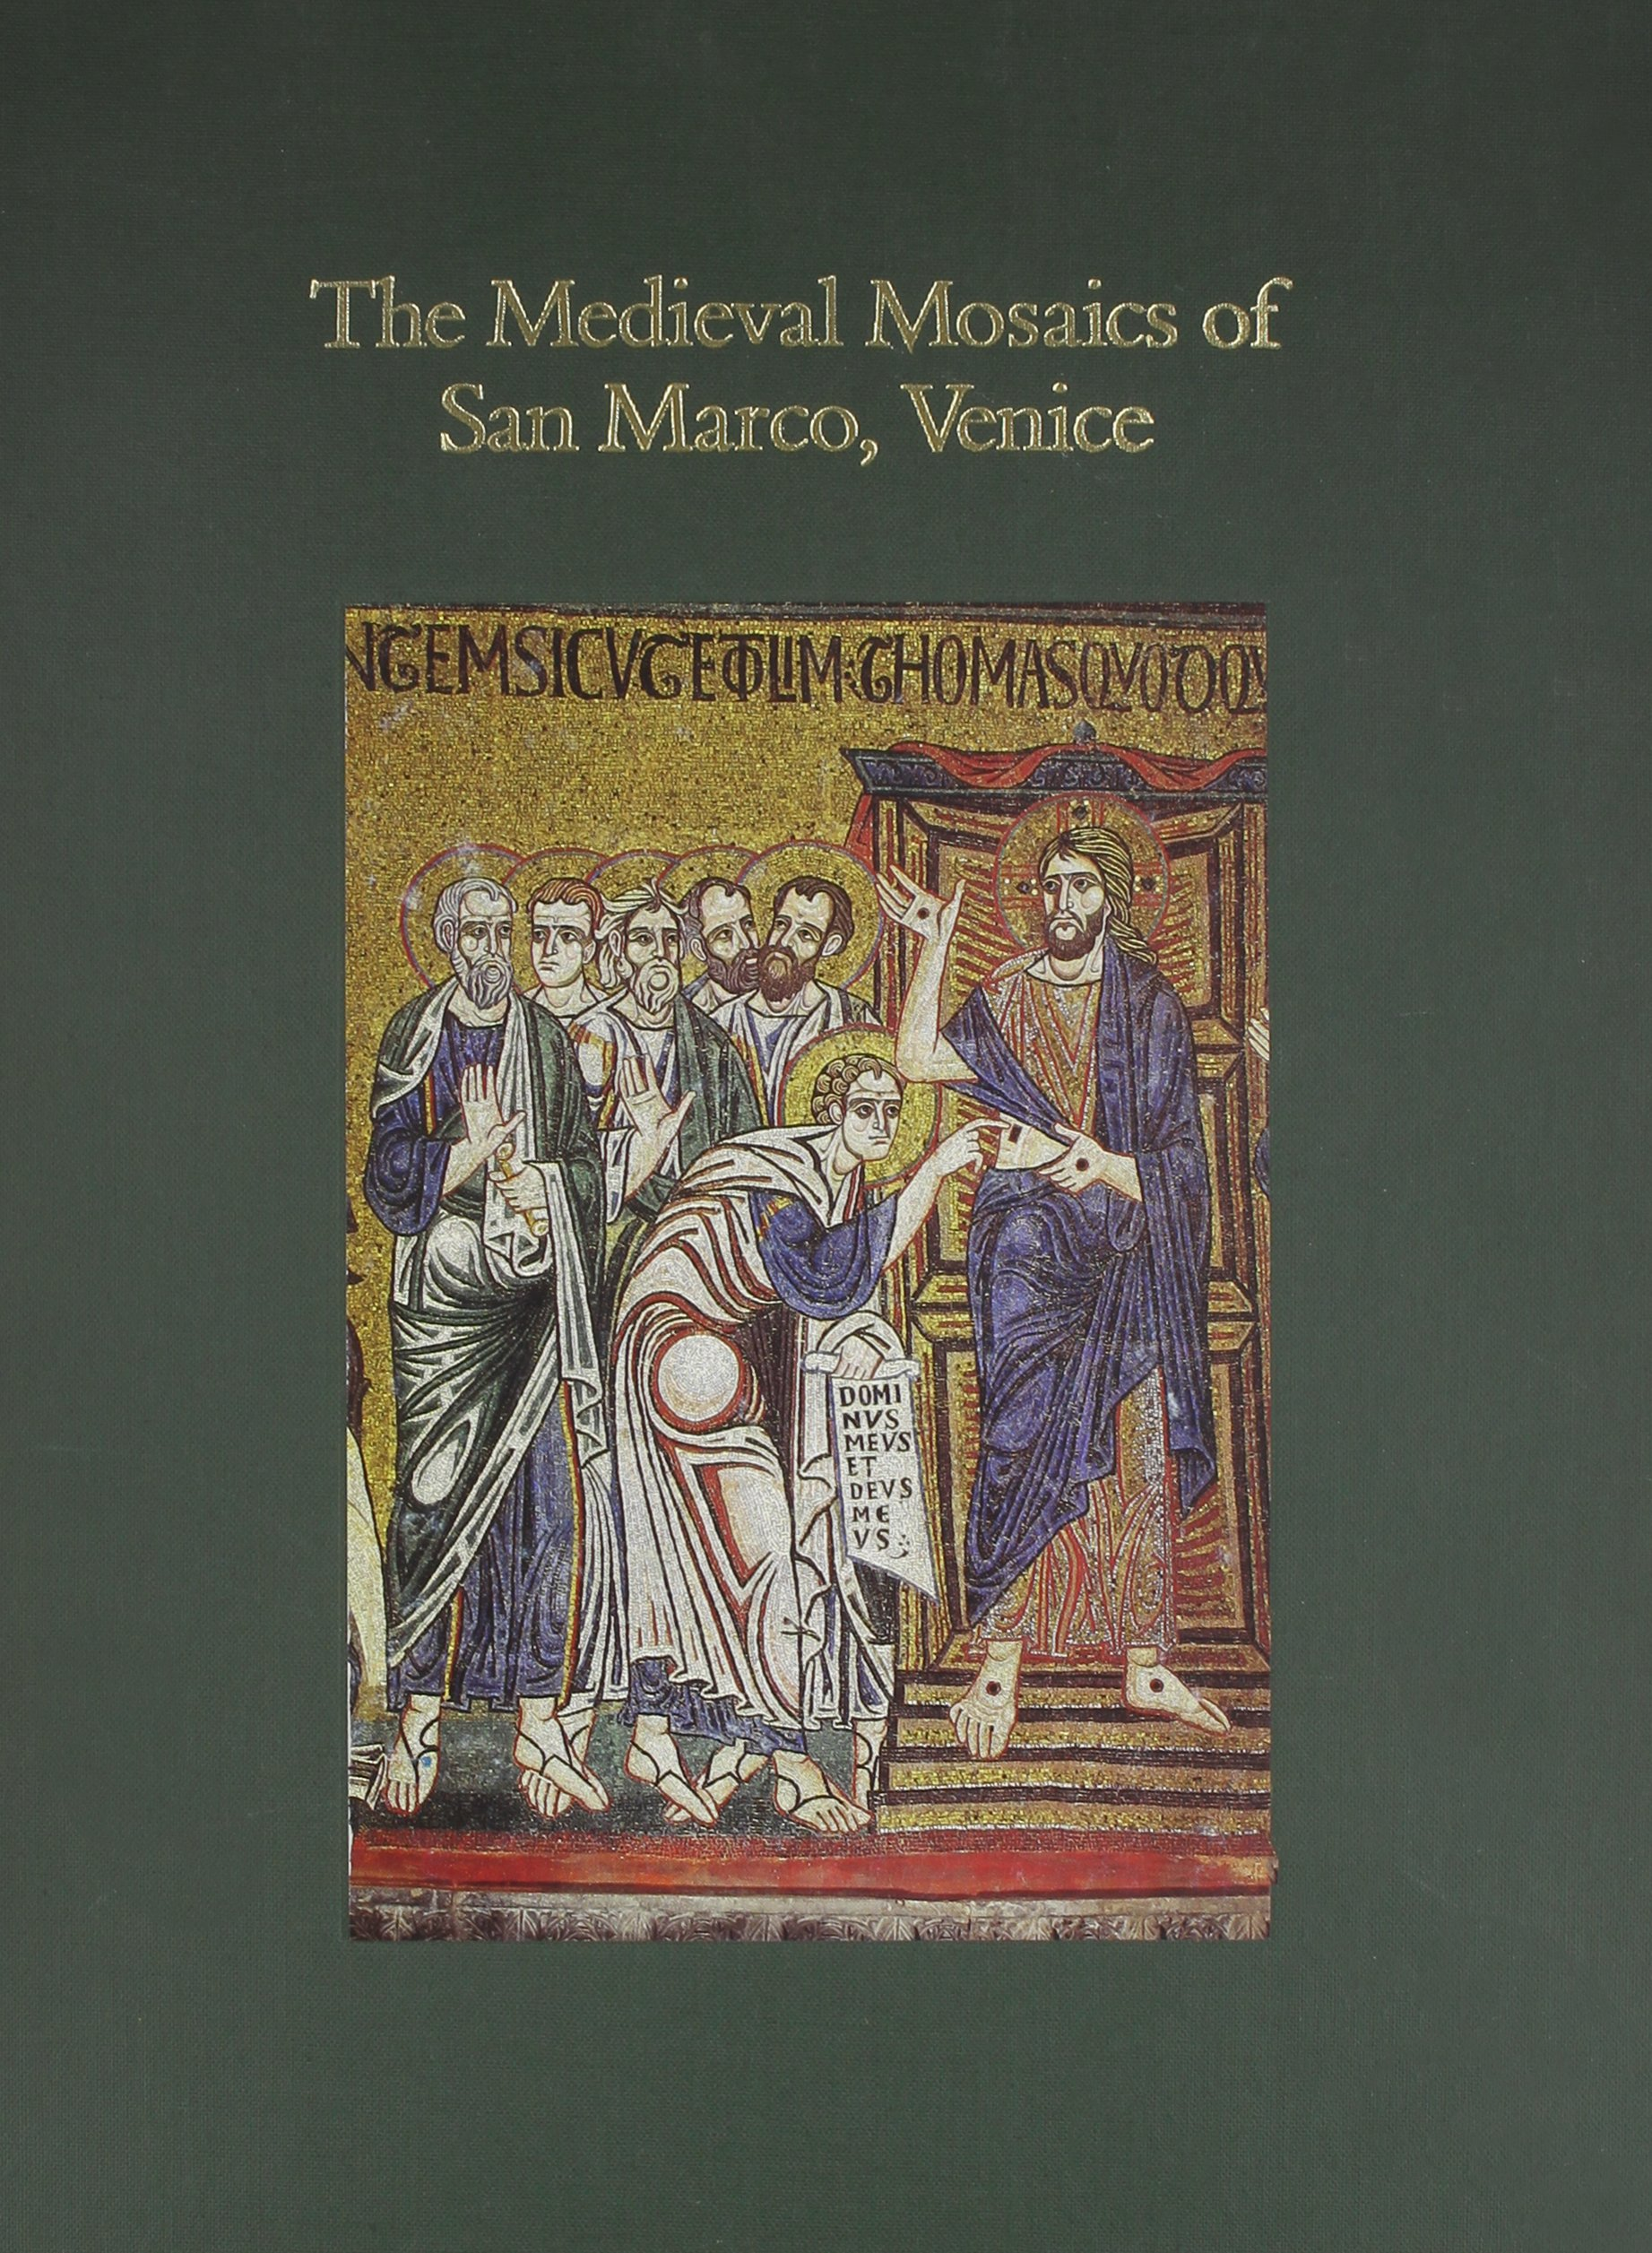 The Medieval Mosaics of San Marco, Venice: A Color Archive (Chicago Visual Library)